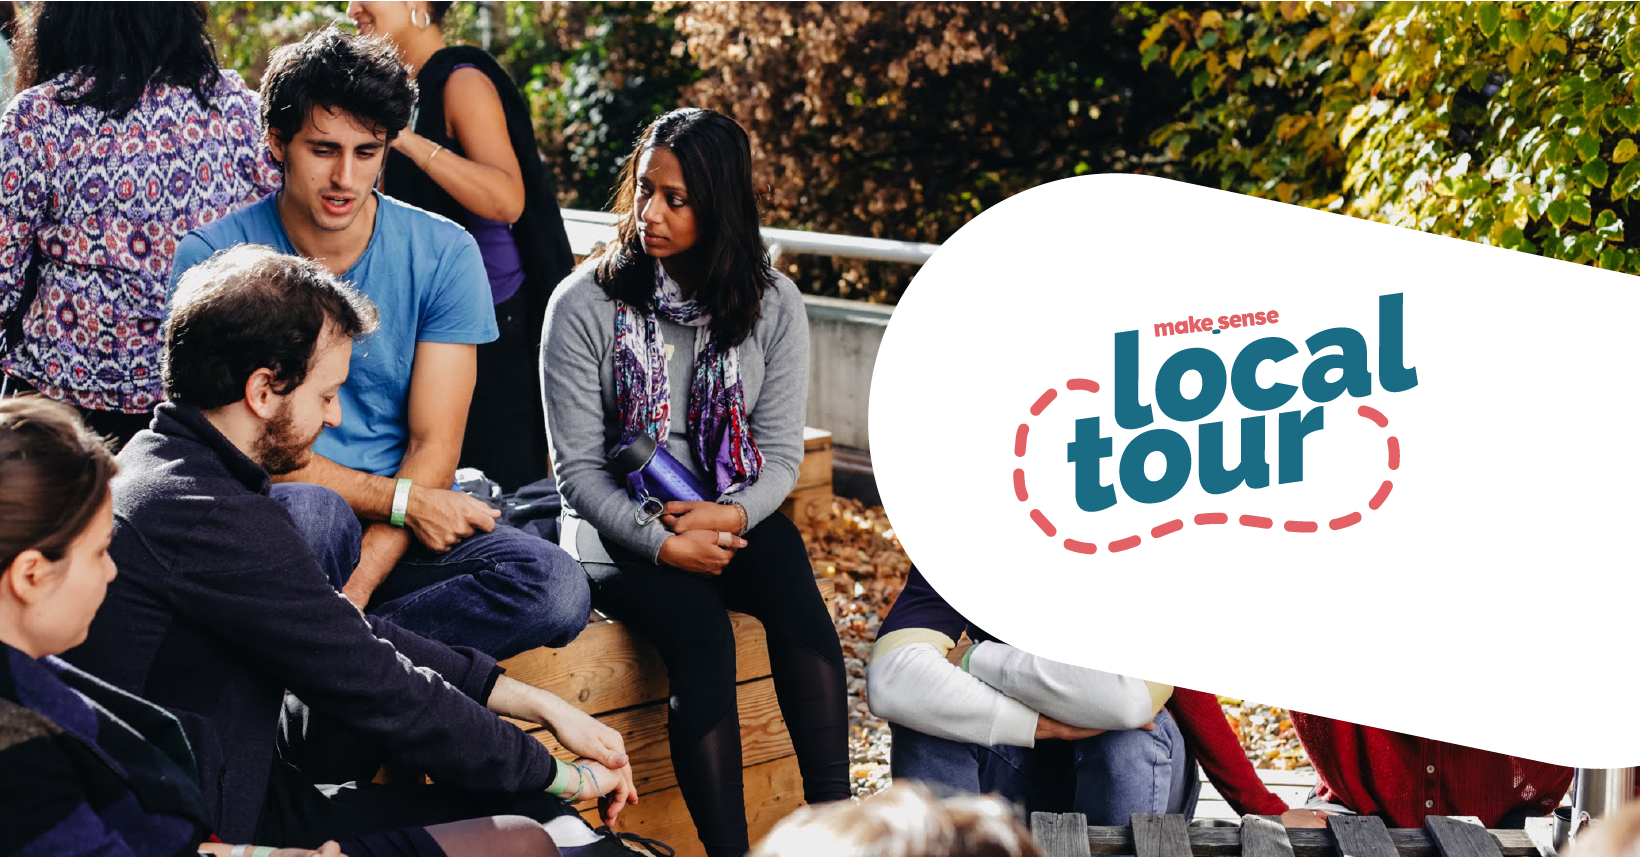 Image de l'événement : How to organize a local tour?